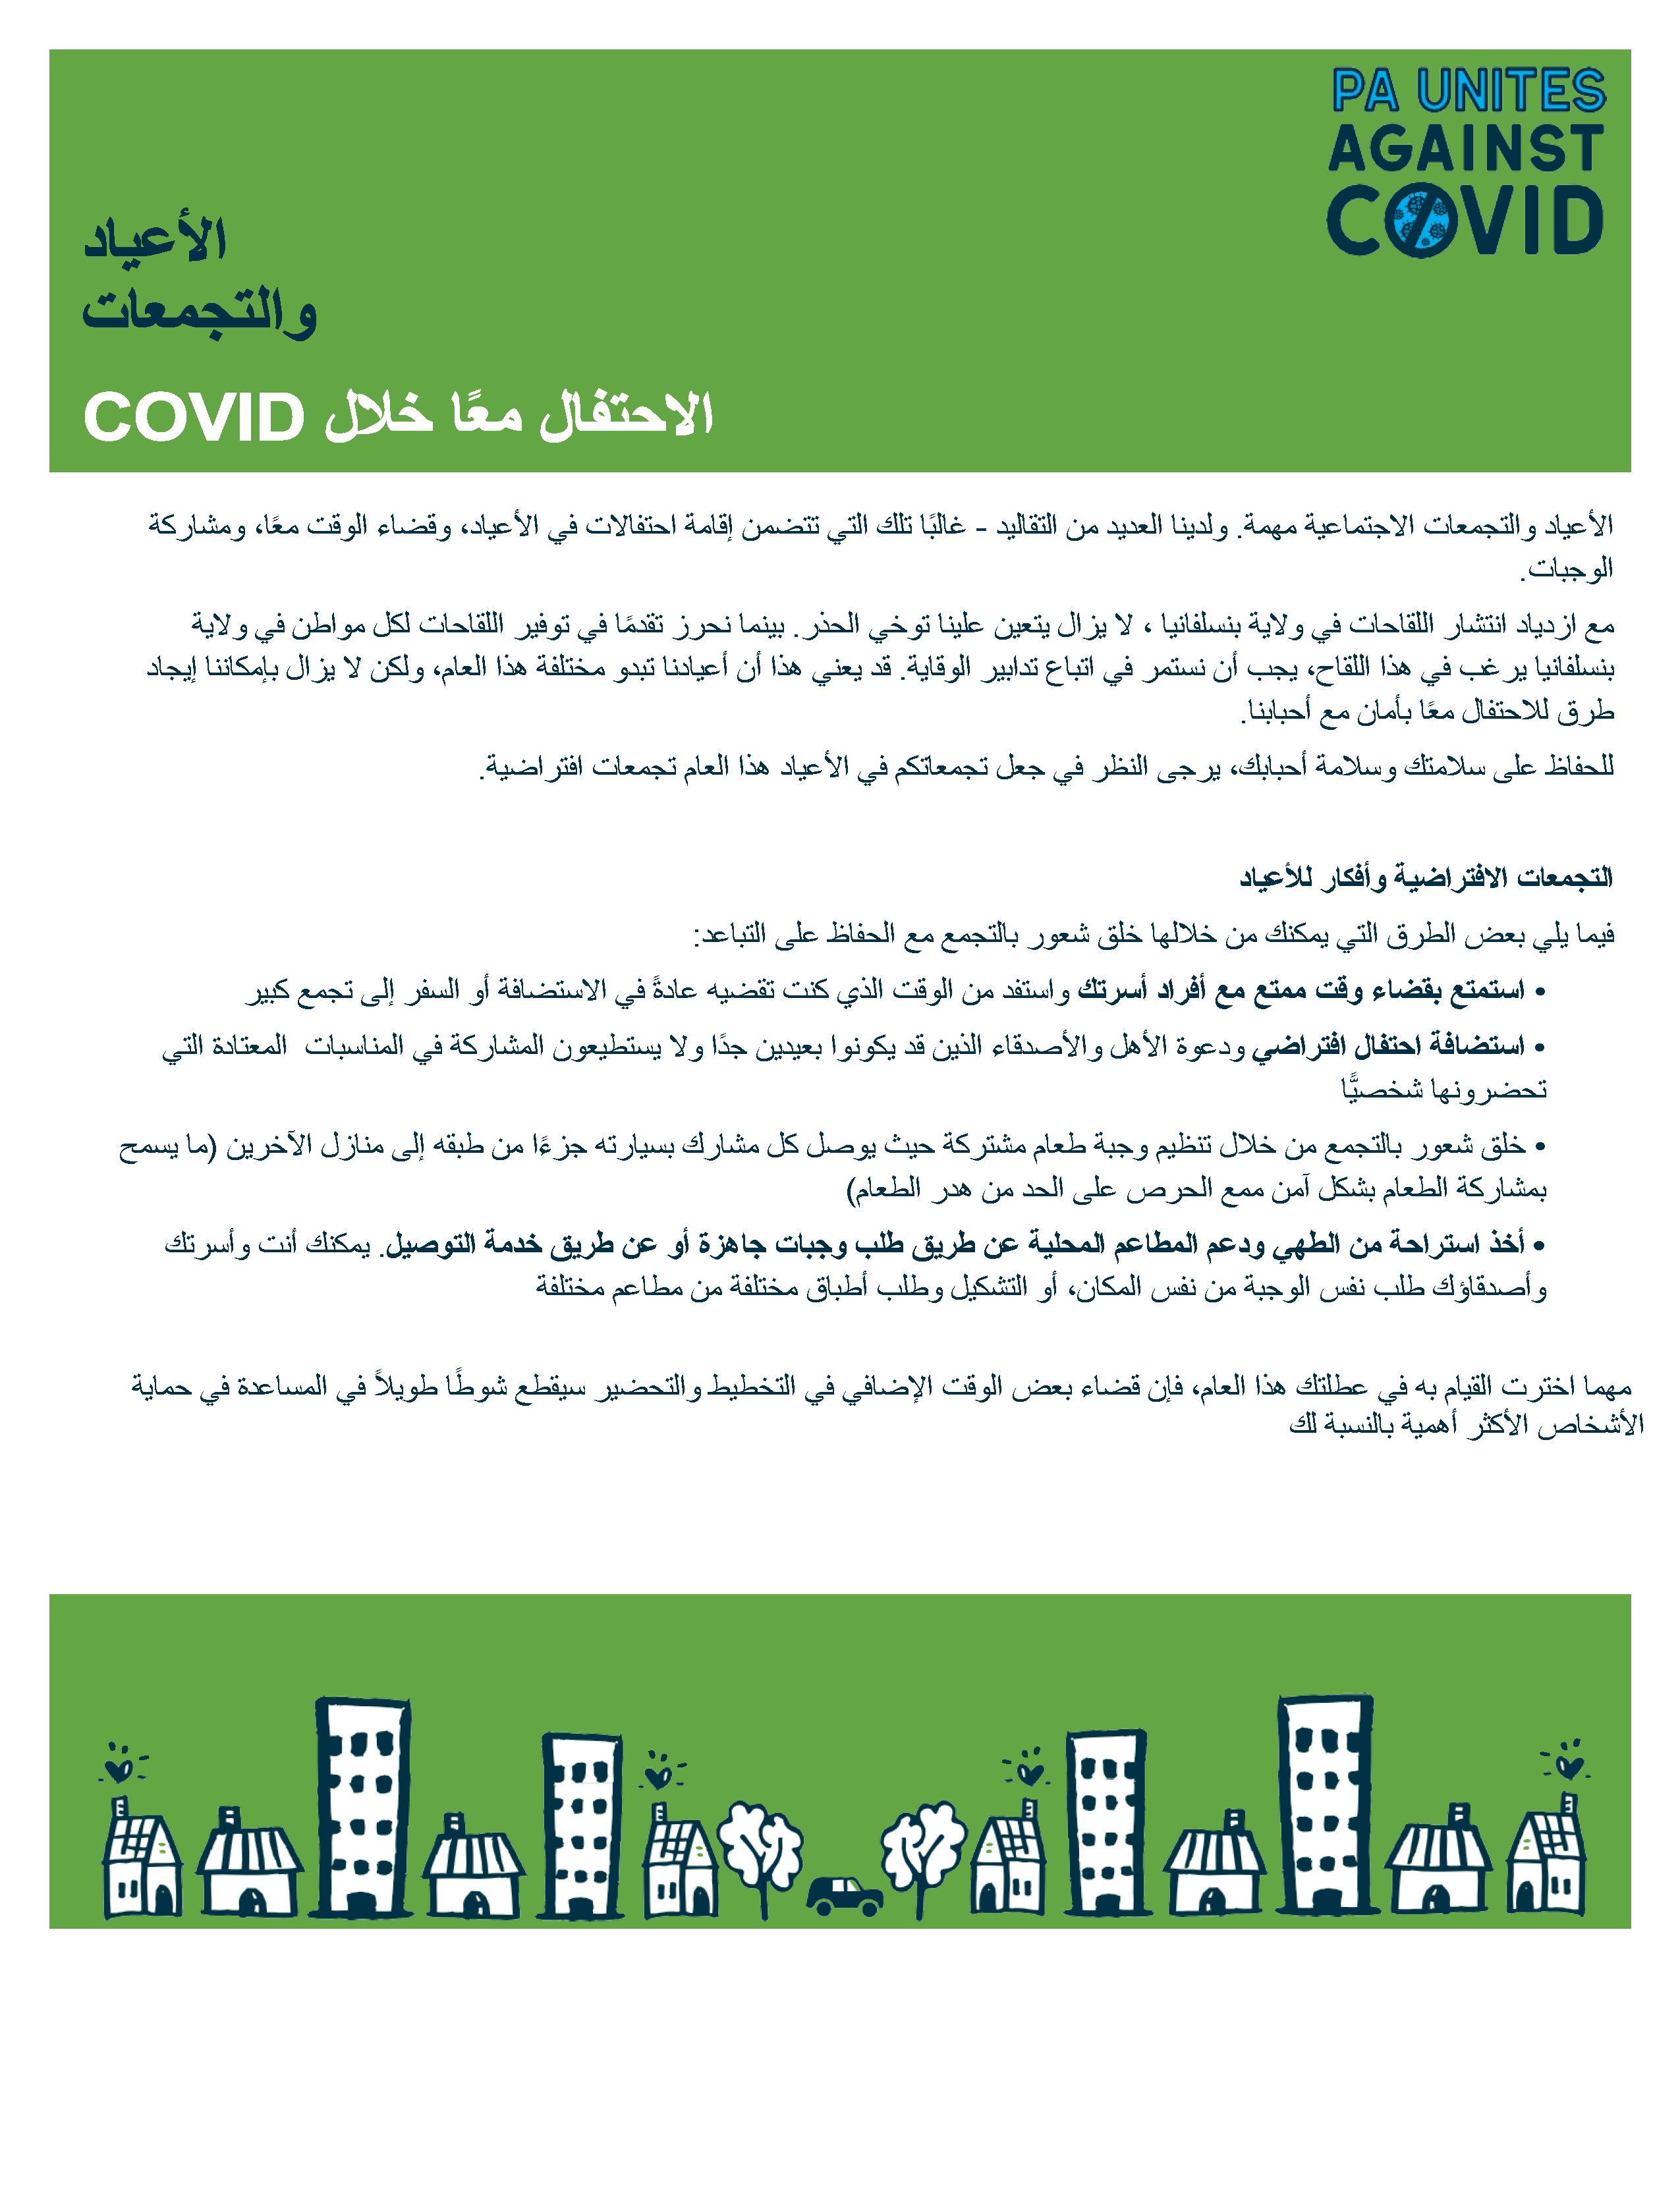 Holidays and Gatherings Flyer (8.5×11) – Arabic